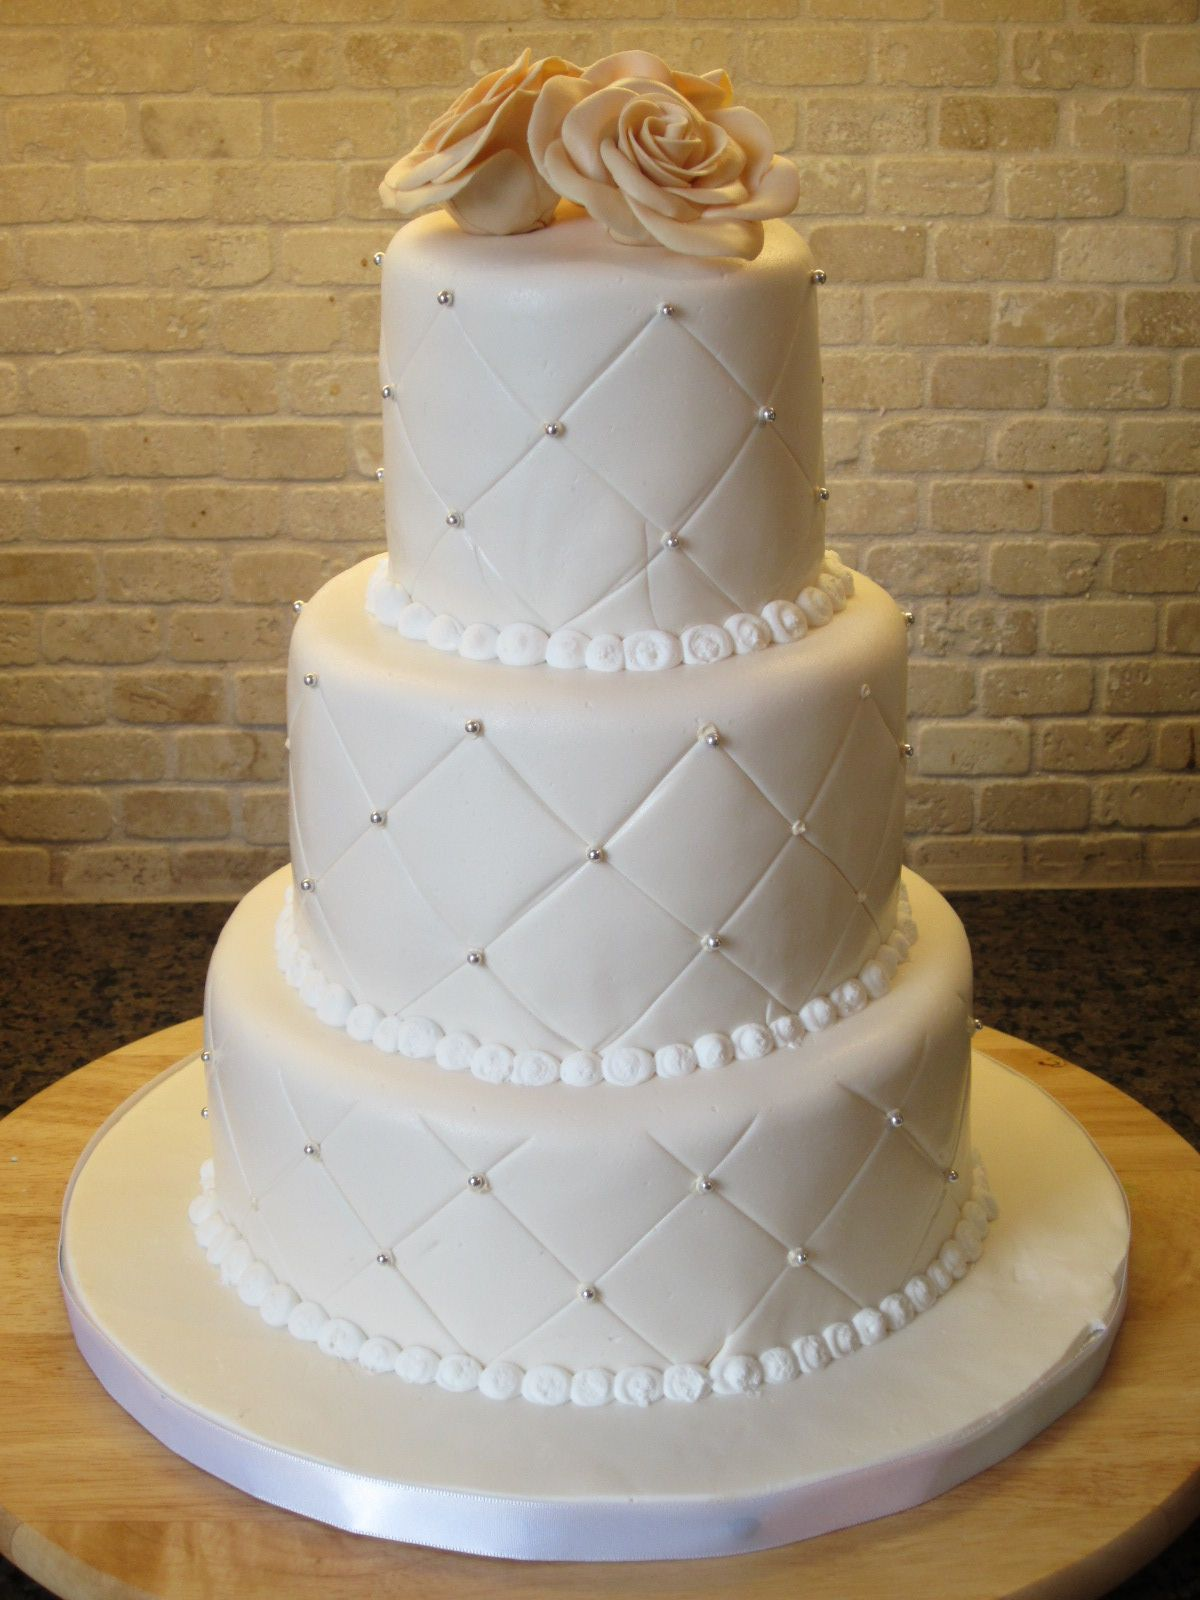 Wedding Cakes Pictures Square #wedding #cakes #pictures #square ... : wedding cake quilt pattern - Adamdwight.com